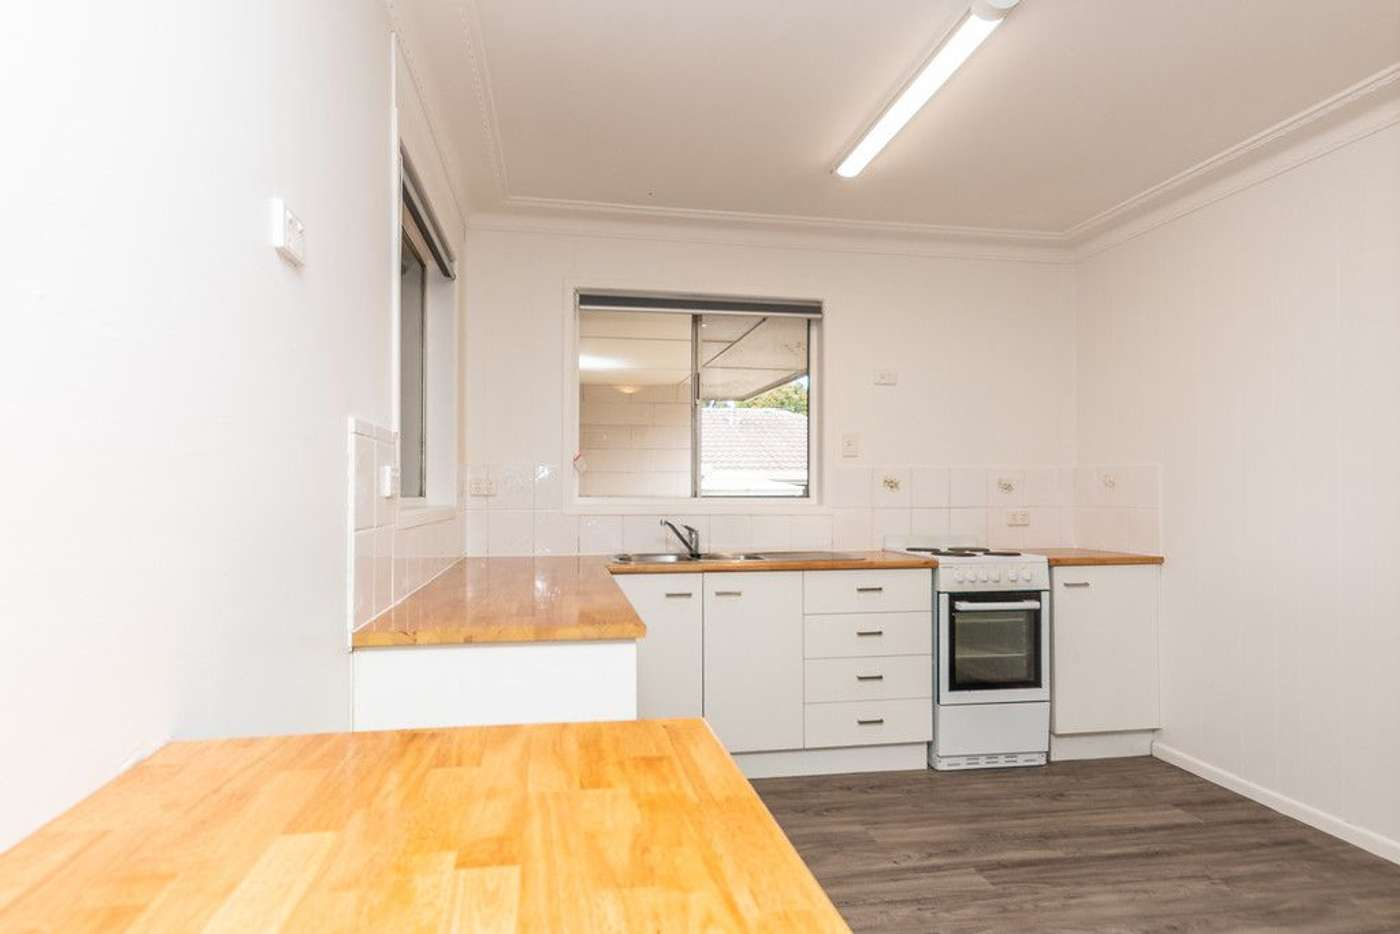 Sixth view of Homely house listing, 243 Anzac Avenue, Kippa-ring QLD 4021